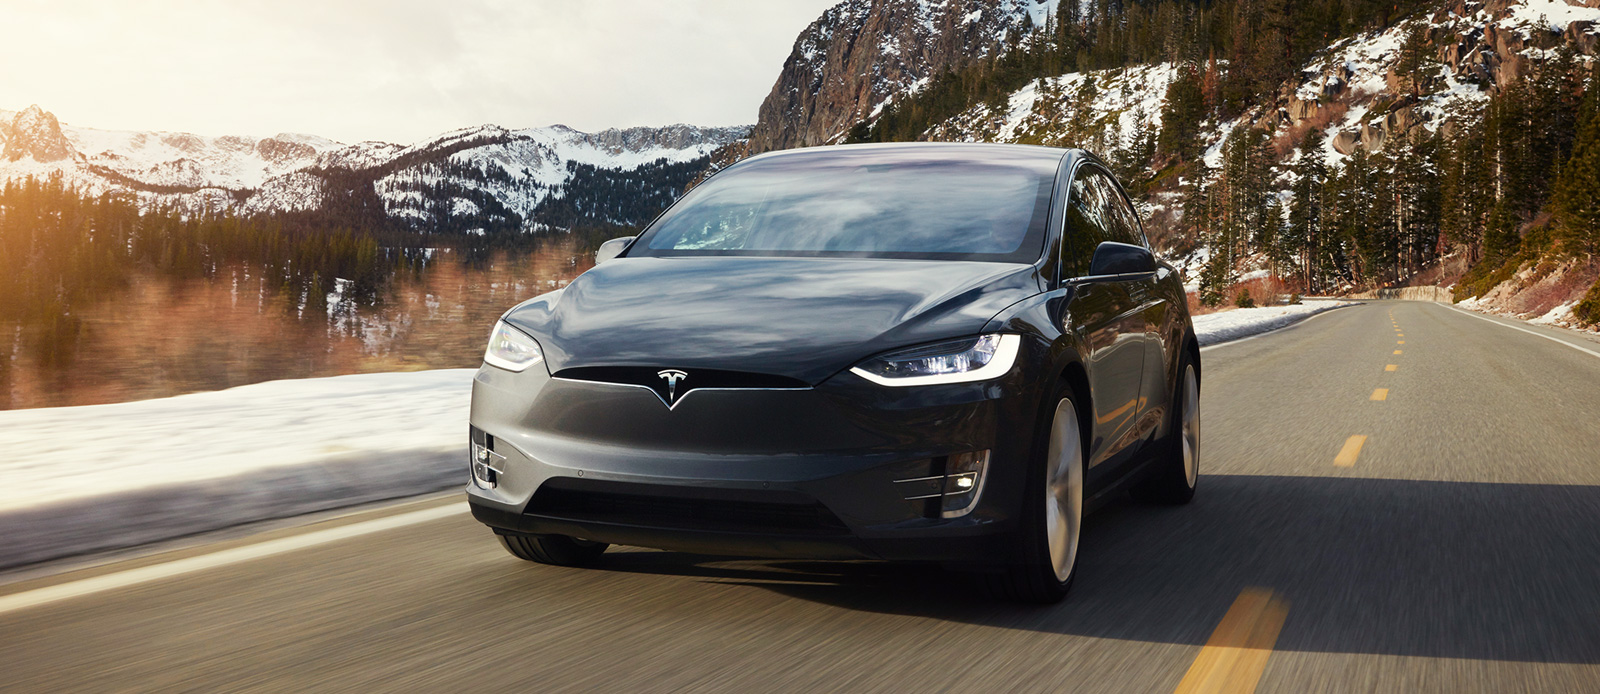 tesla model x price quietly lowered news. Black Bedroom Furniture Sets. Home Design Ideas